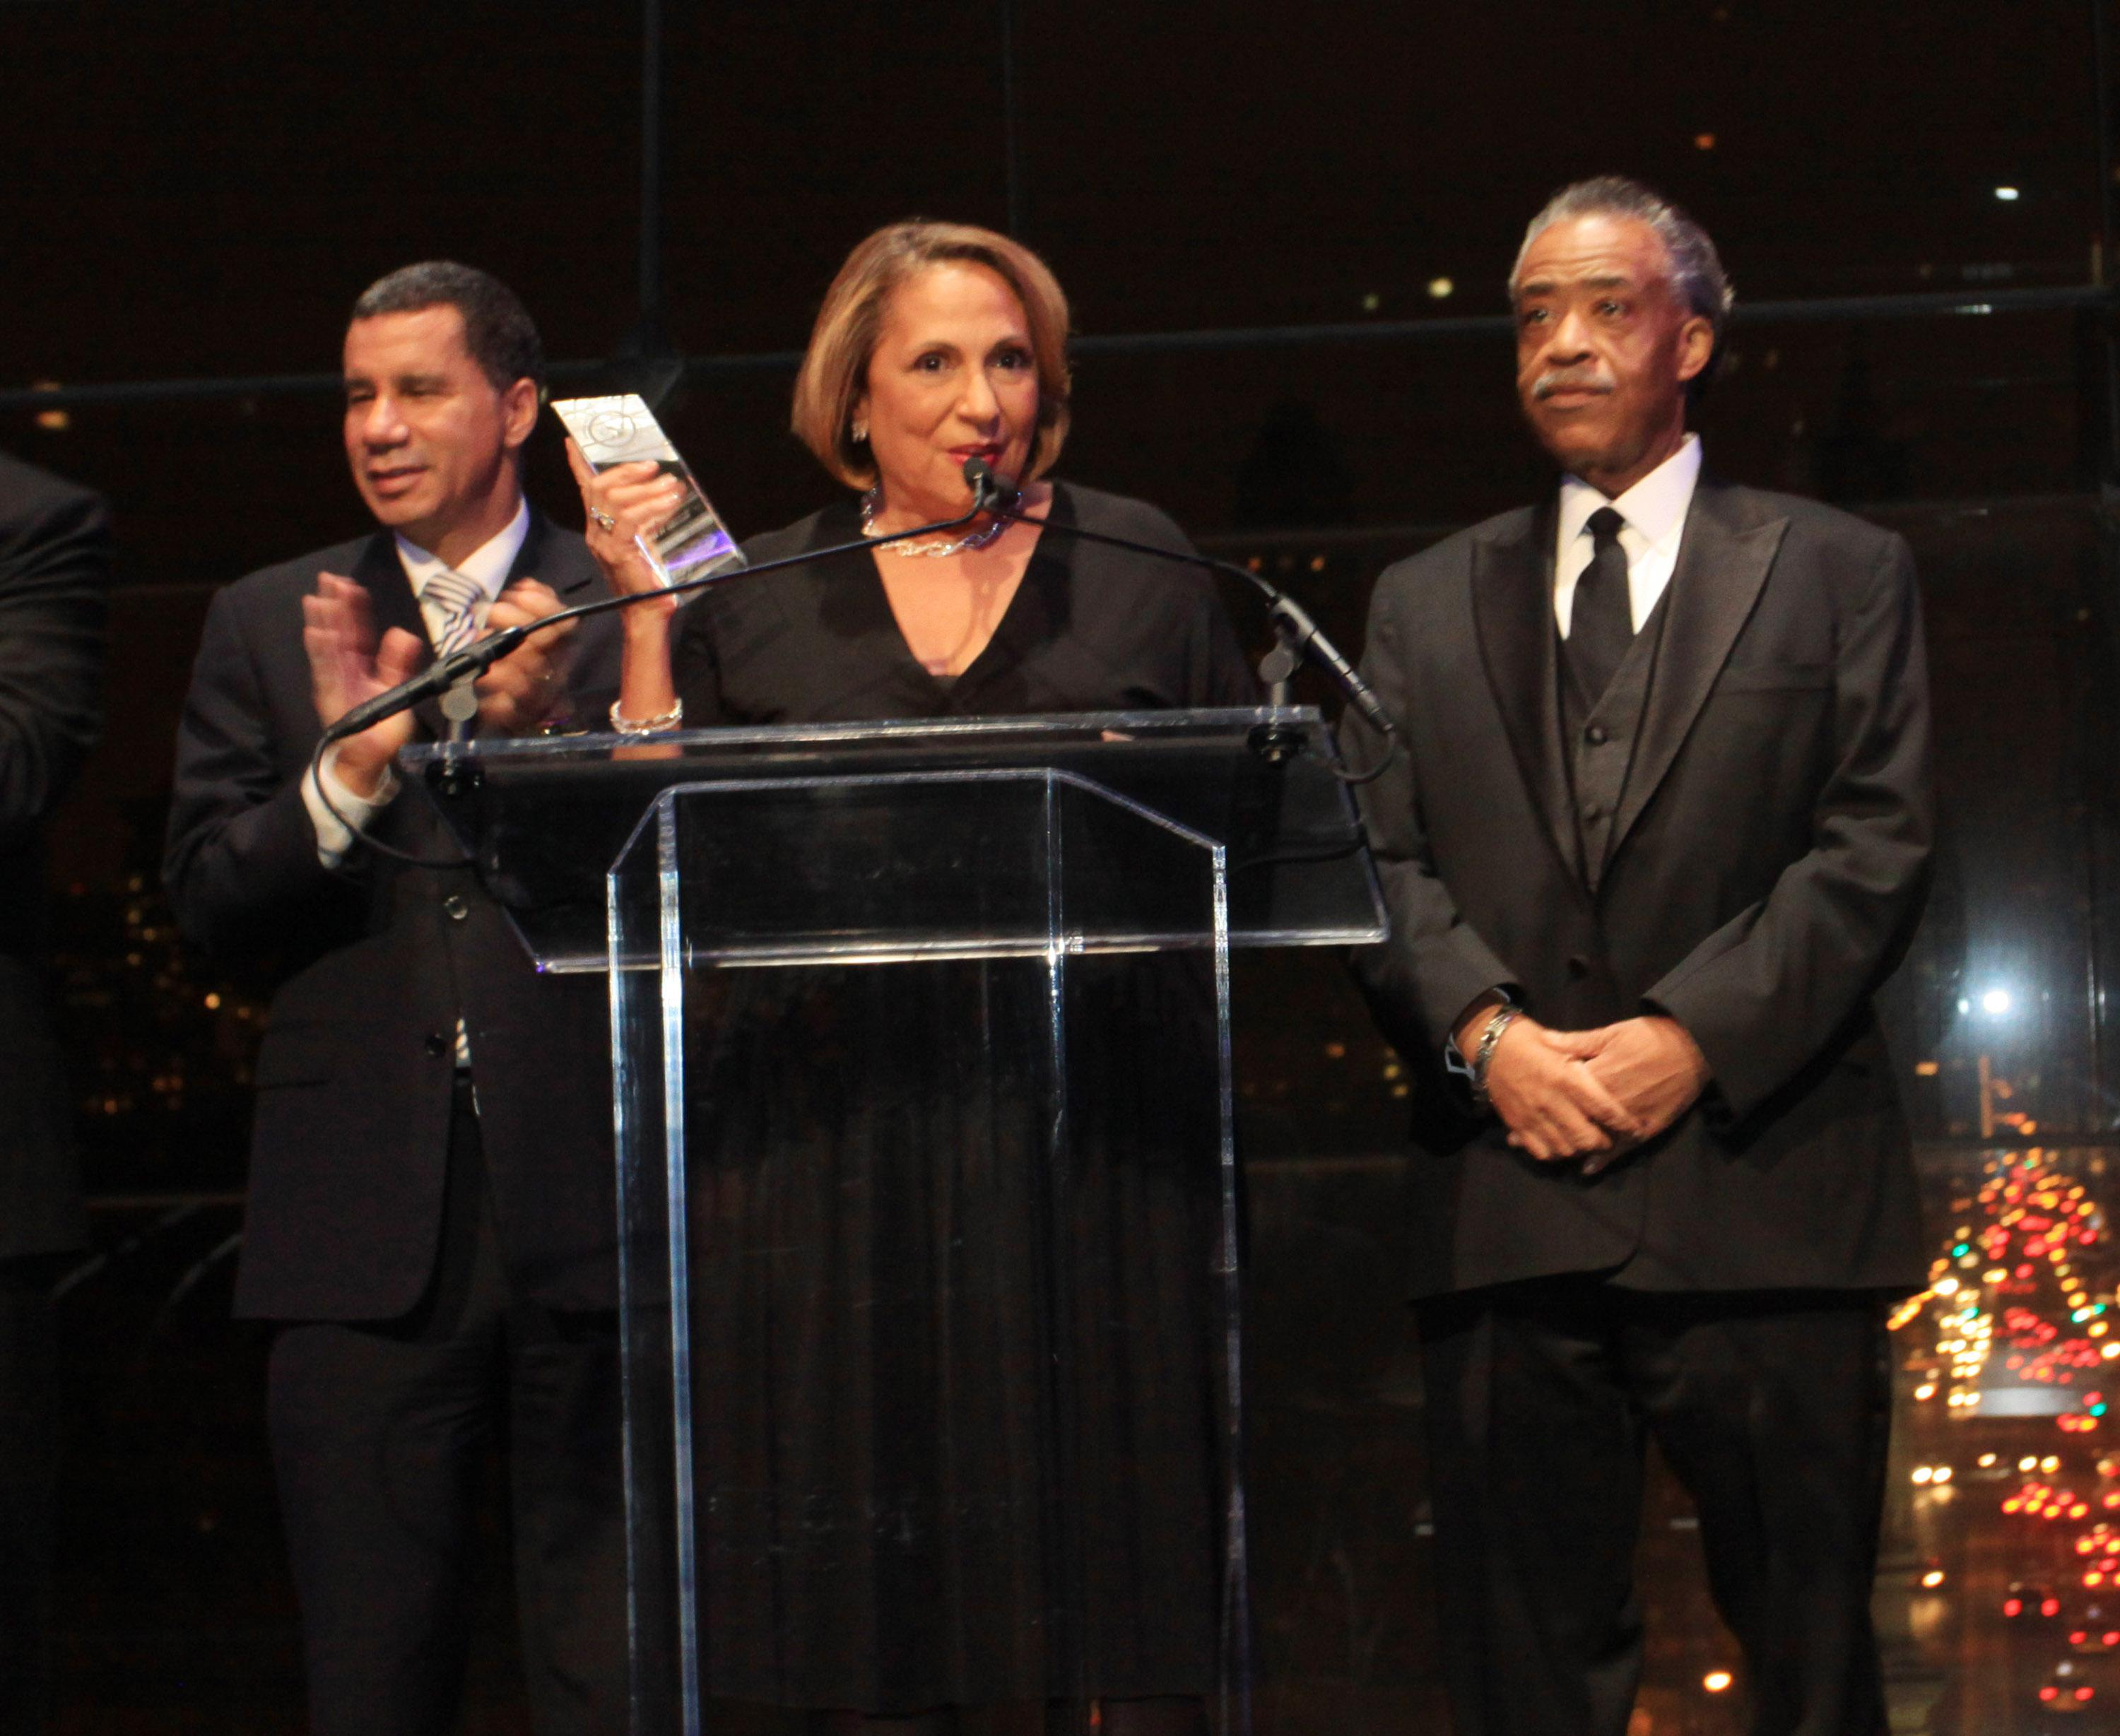 2010 National Action Network Triumph Awards